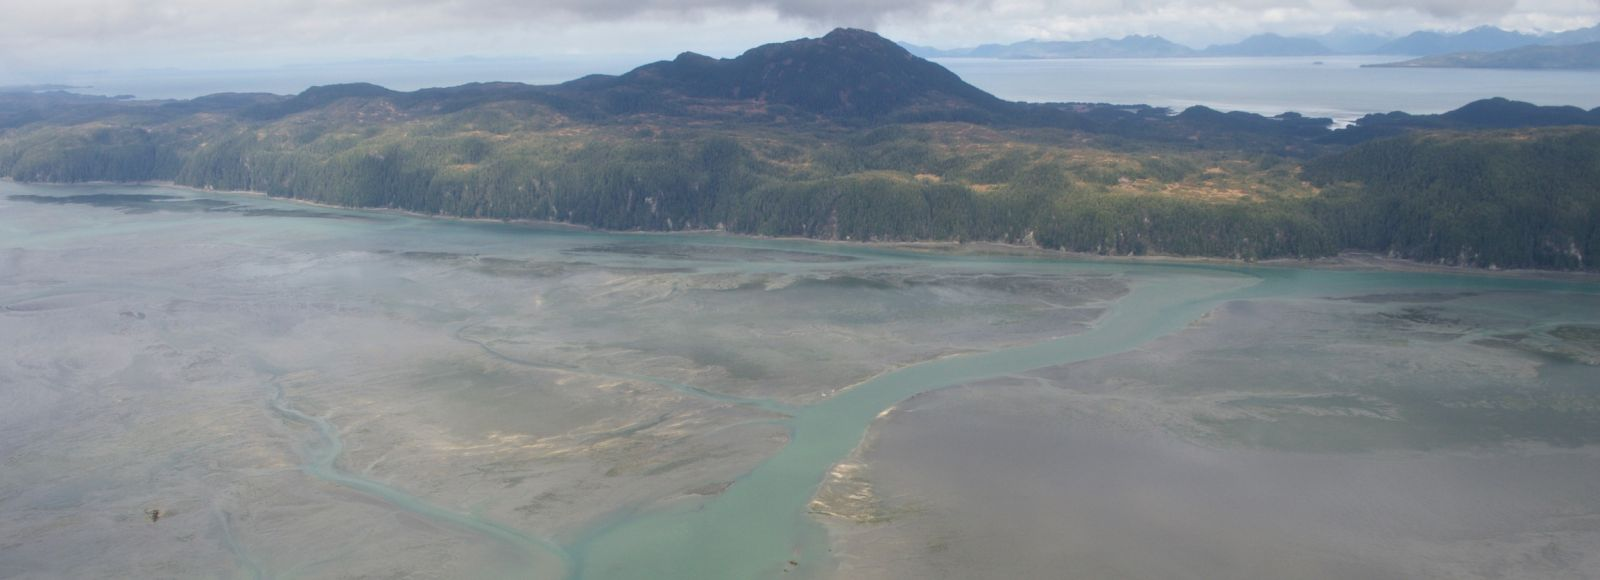 aerial shot of turquoise water and wetland with mountain and forests in background